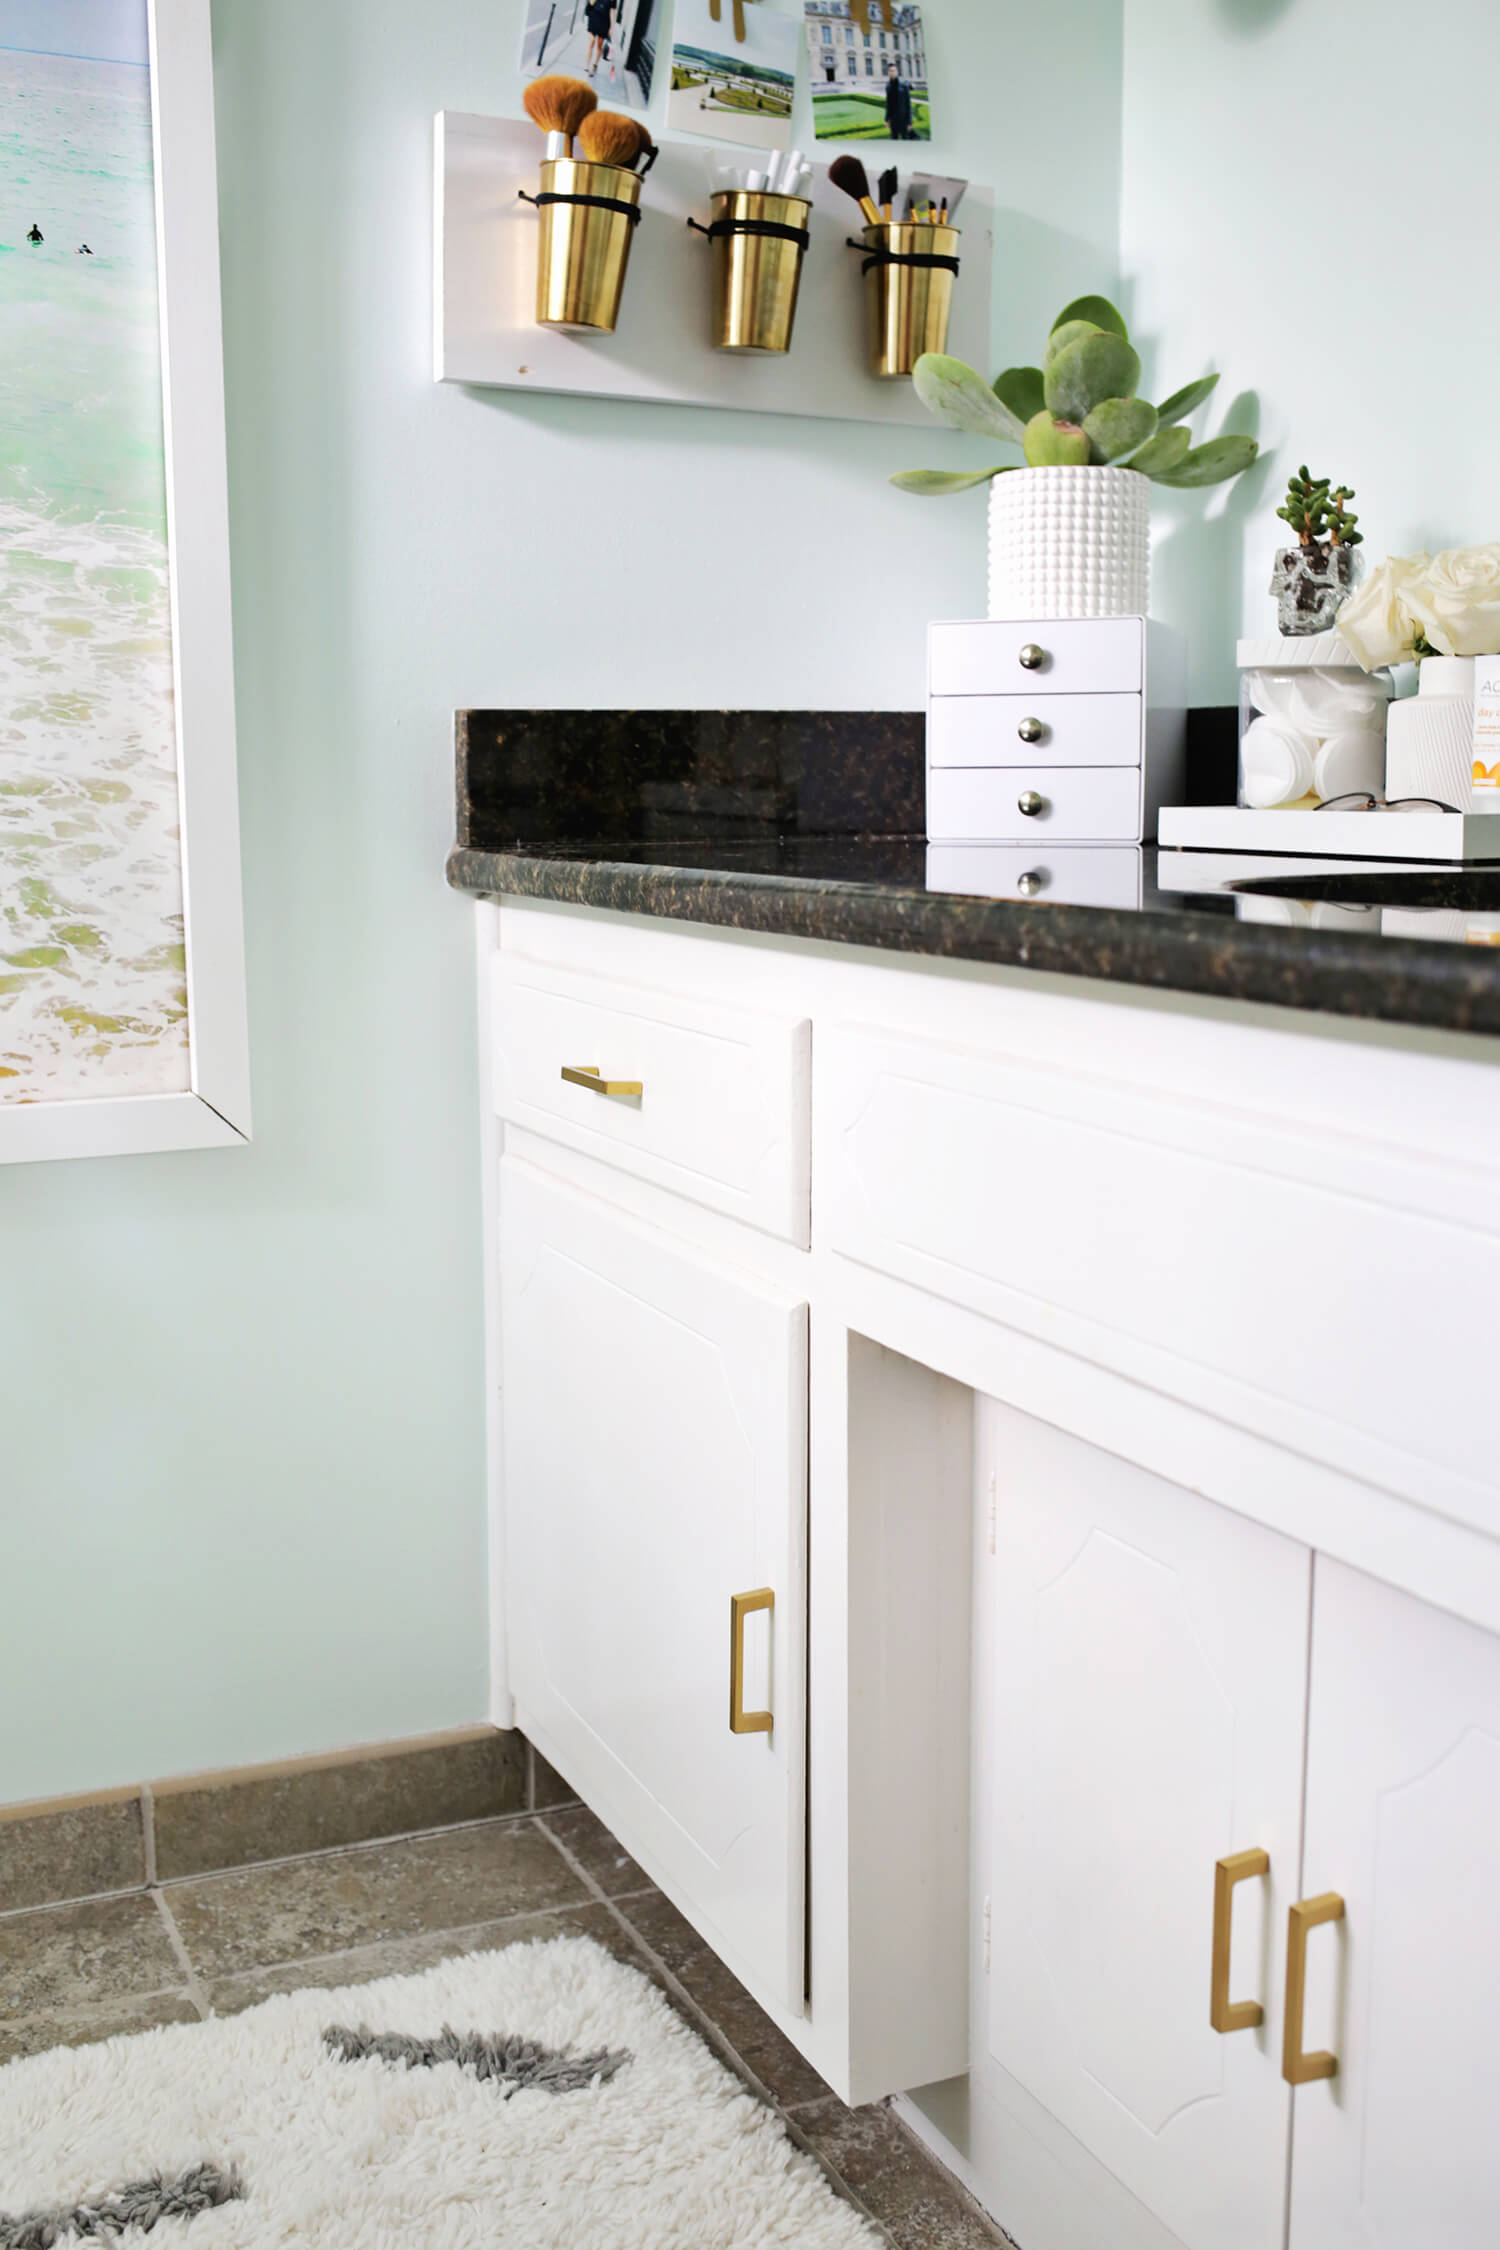 Laura's Master Bathroom Before + After! (click through to see more)